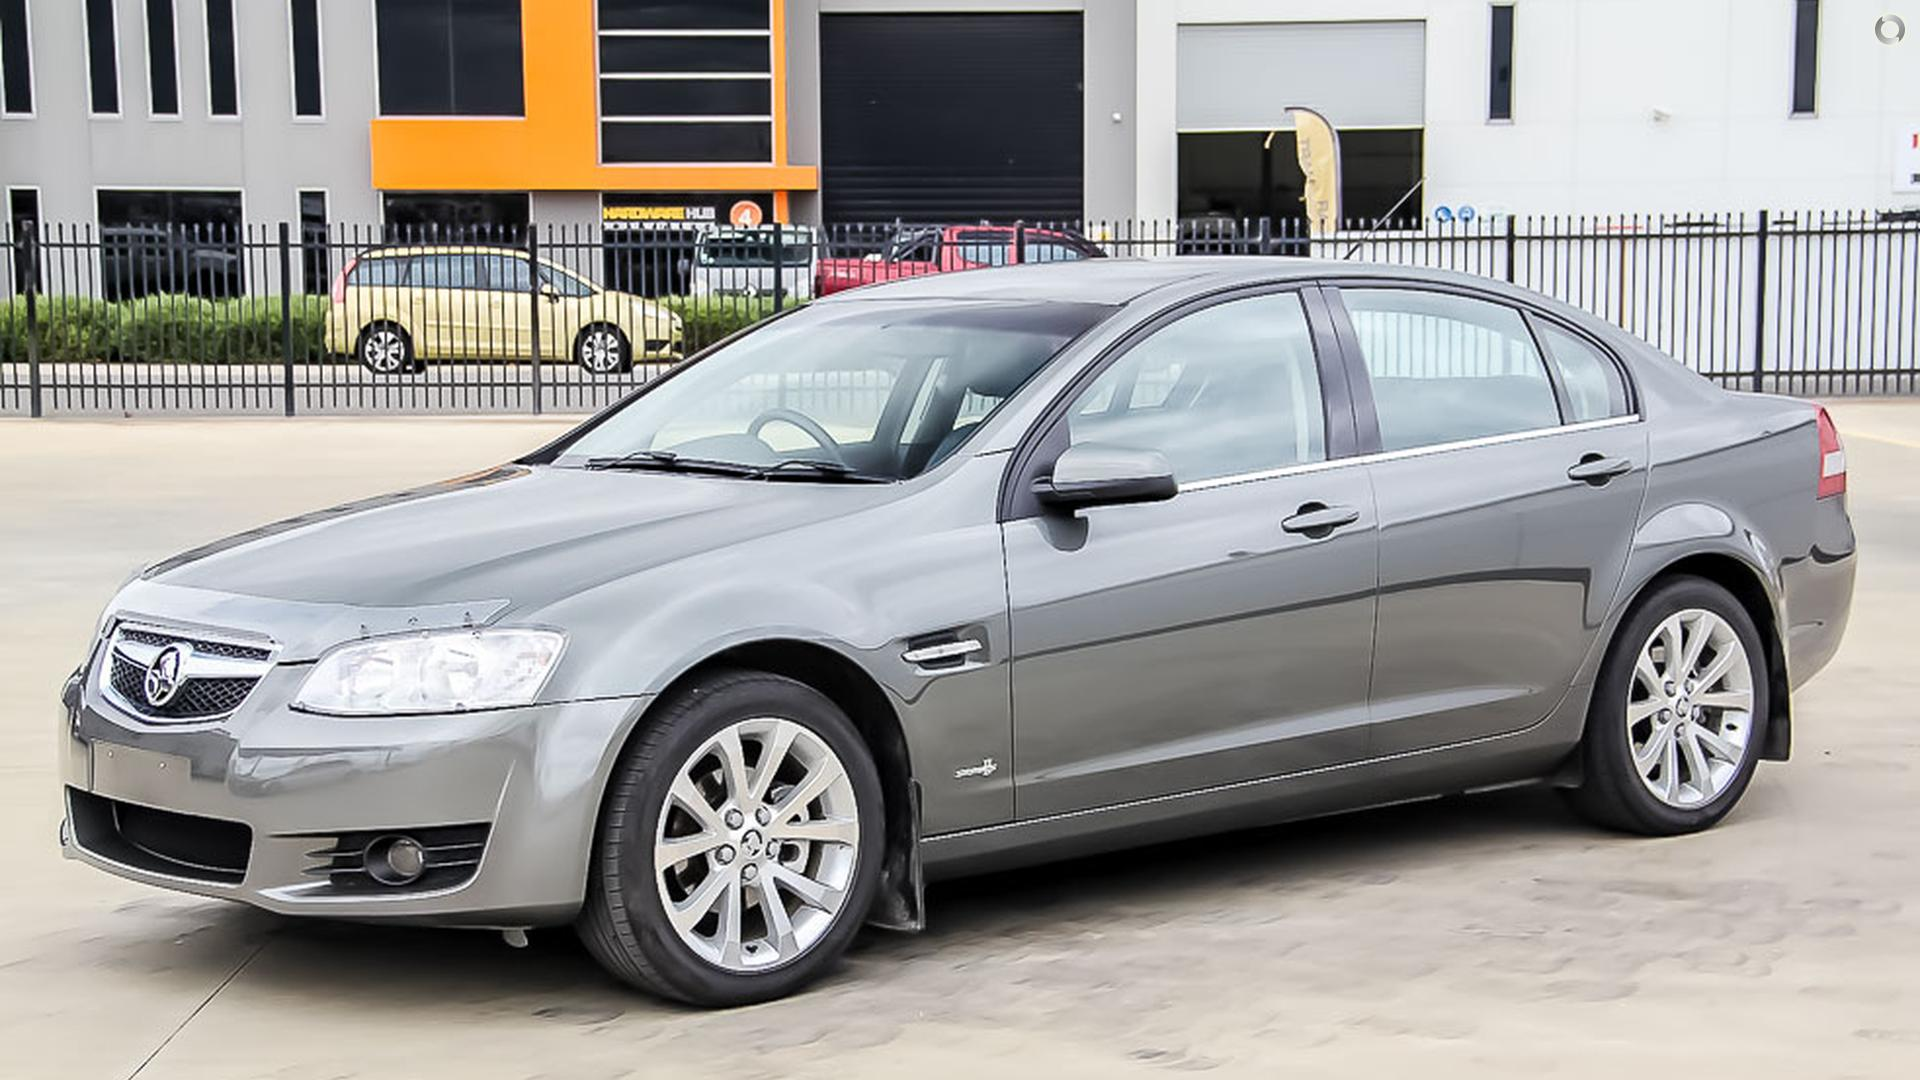 2010 Holden Berlina International VE Series II